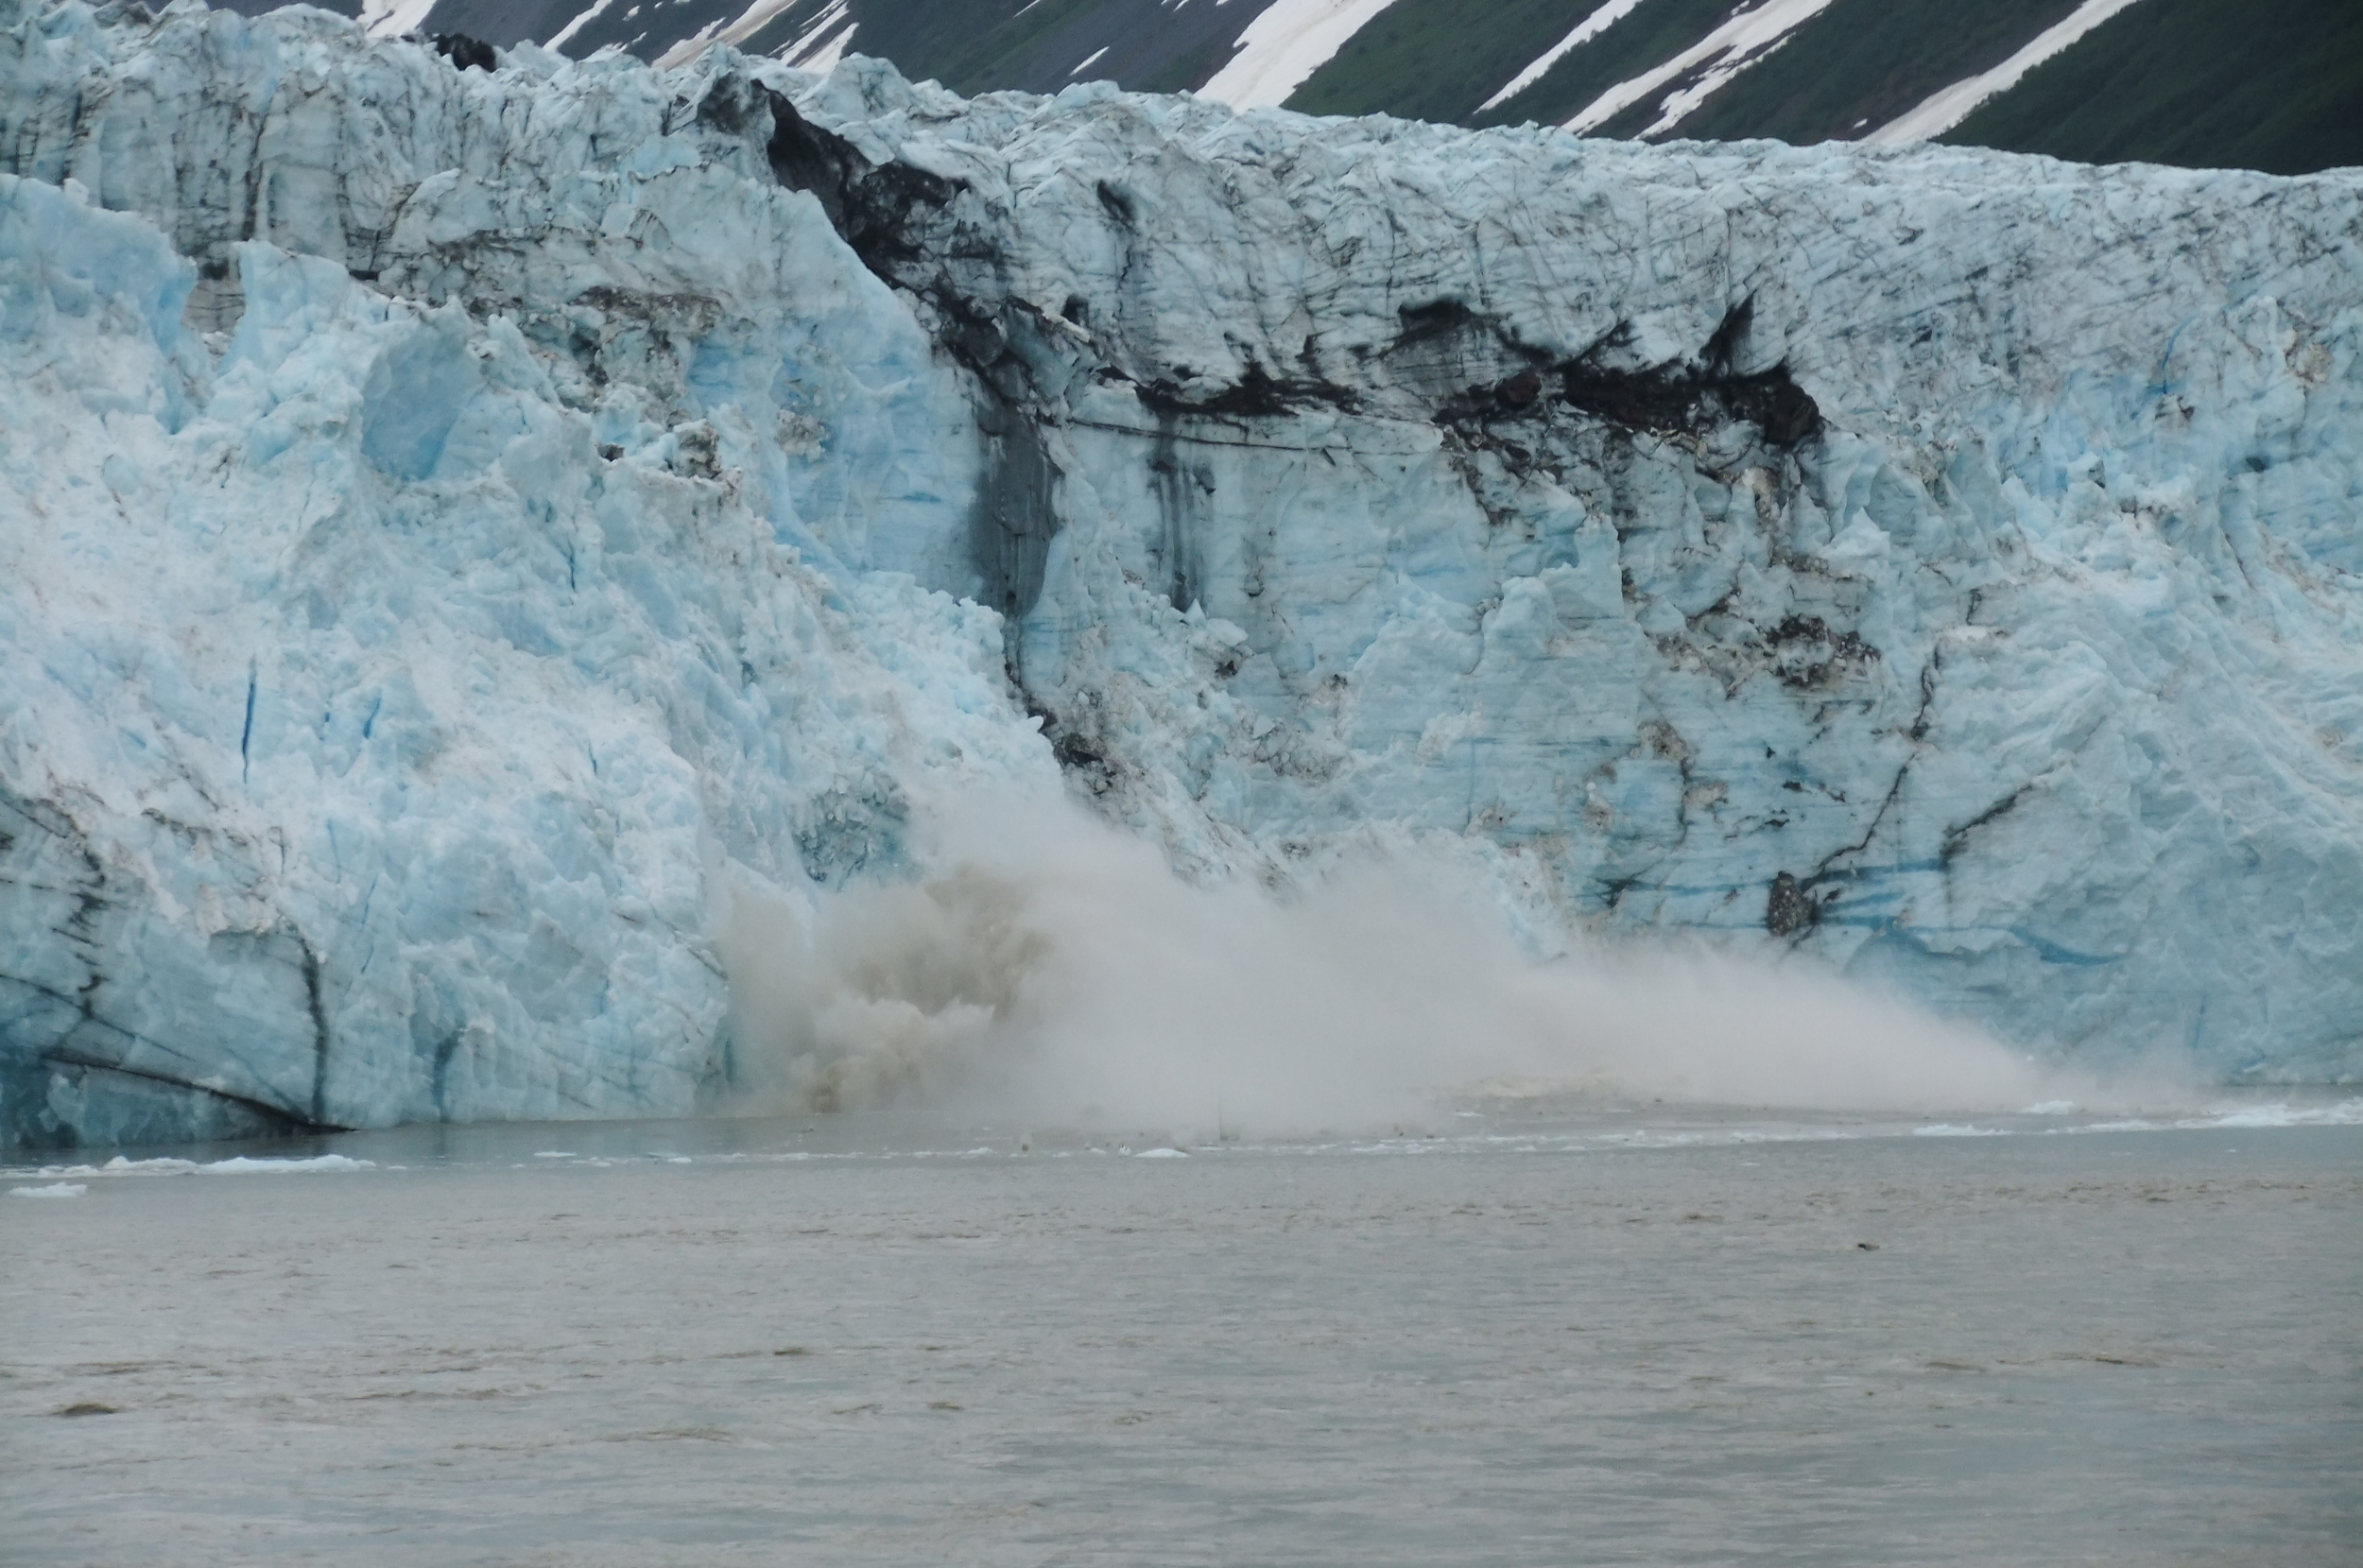 A glacier that was collapsing during my trek in Alaska in 2010.